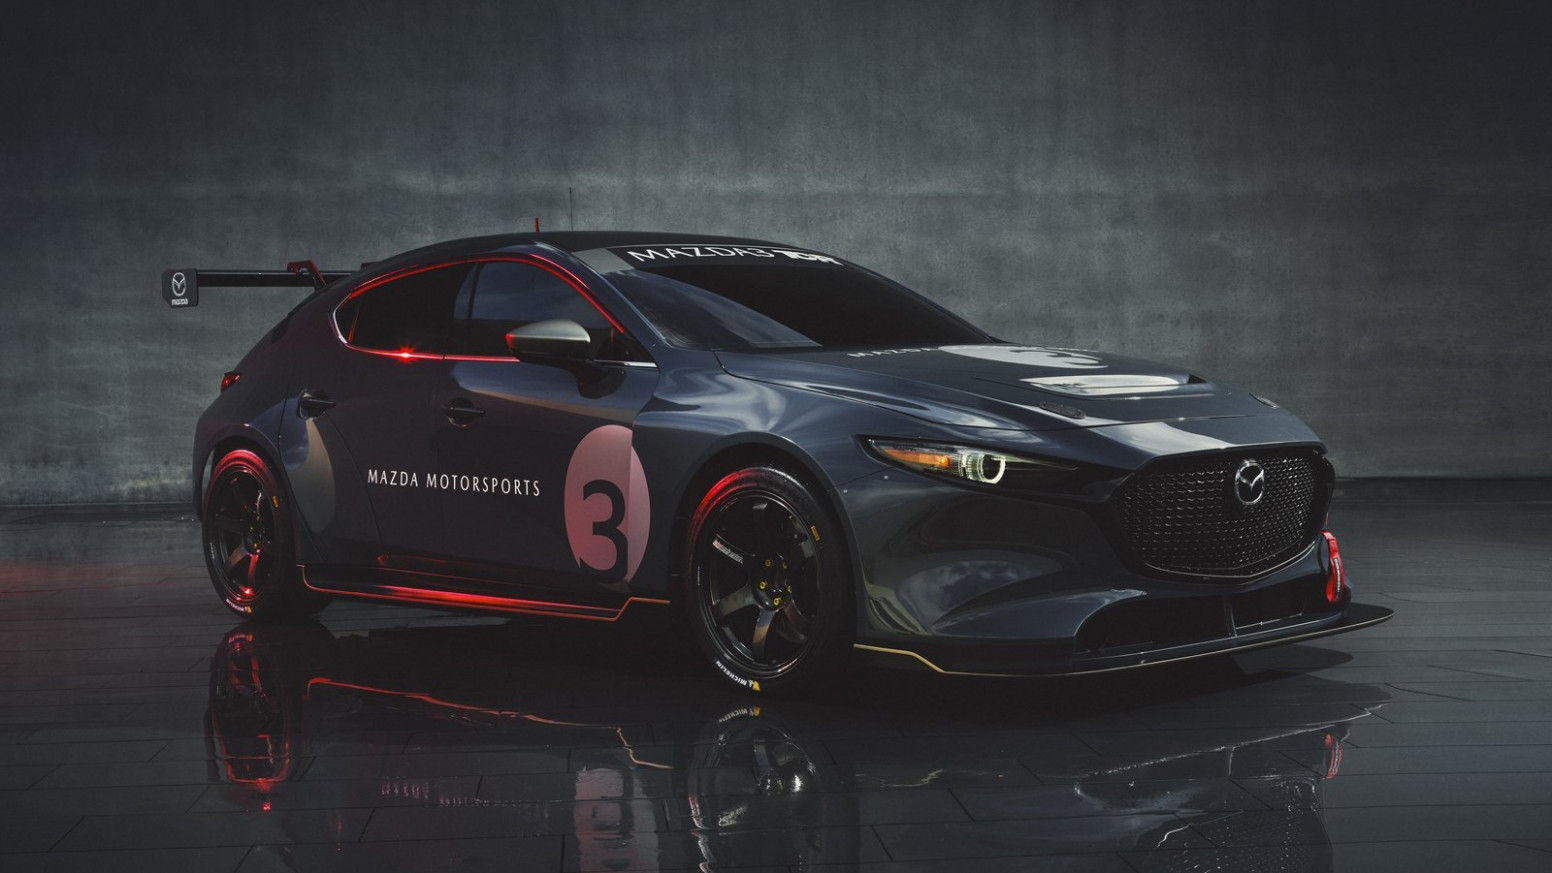 This Is What The New Mazdaspeed6 Could Look Like, But Won't | Top ...